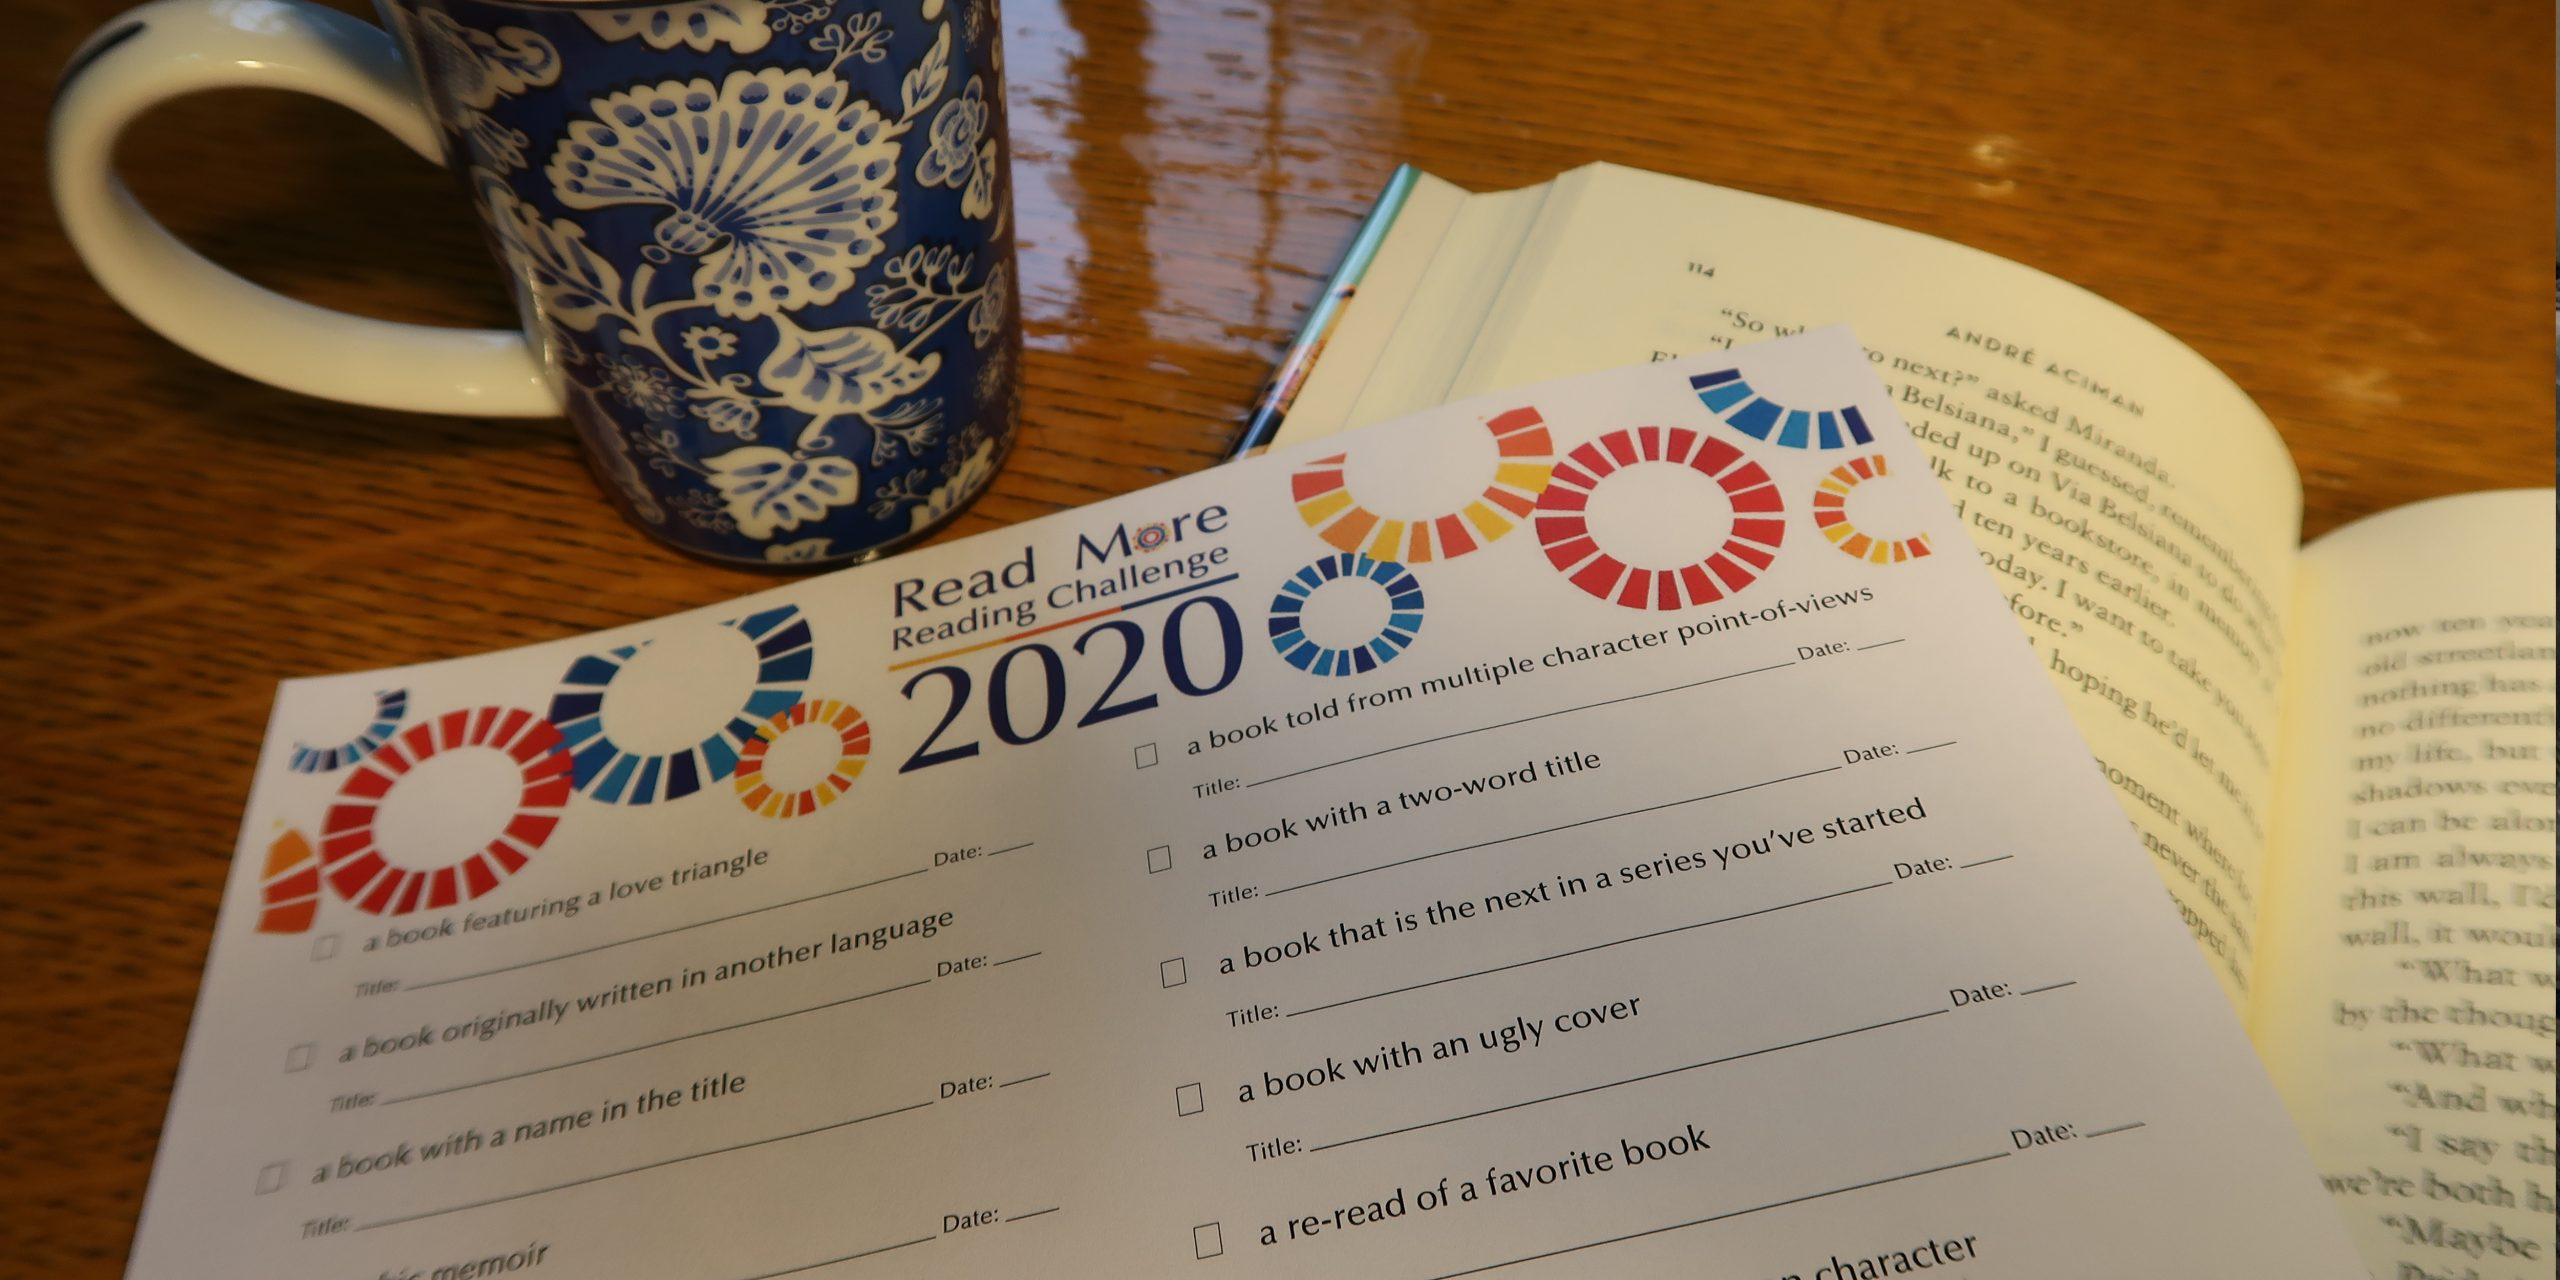 Read More! 2020 Reading Challenge